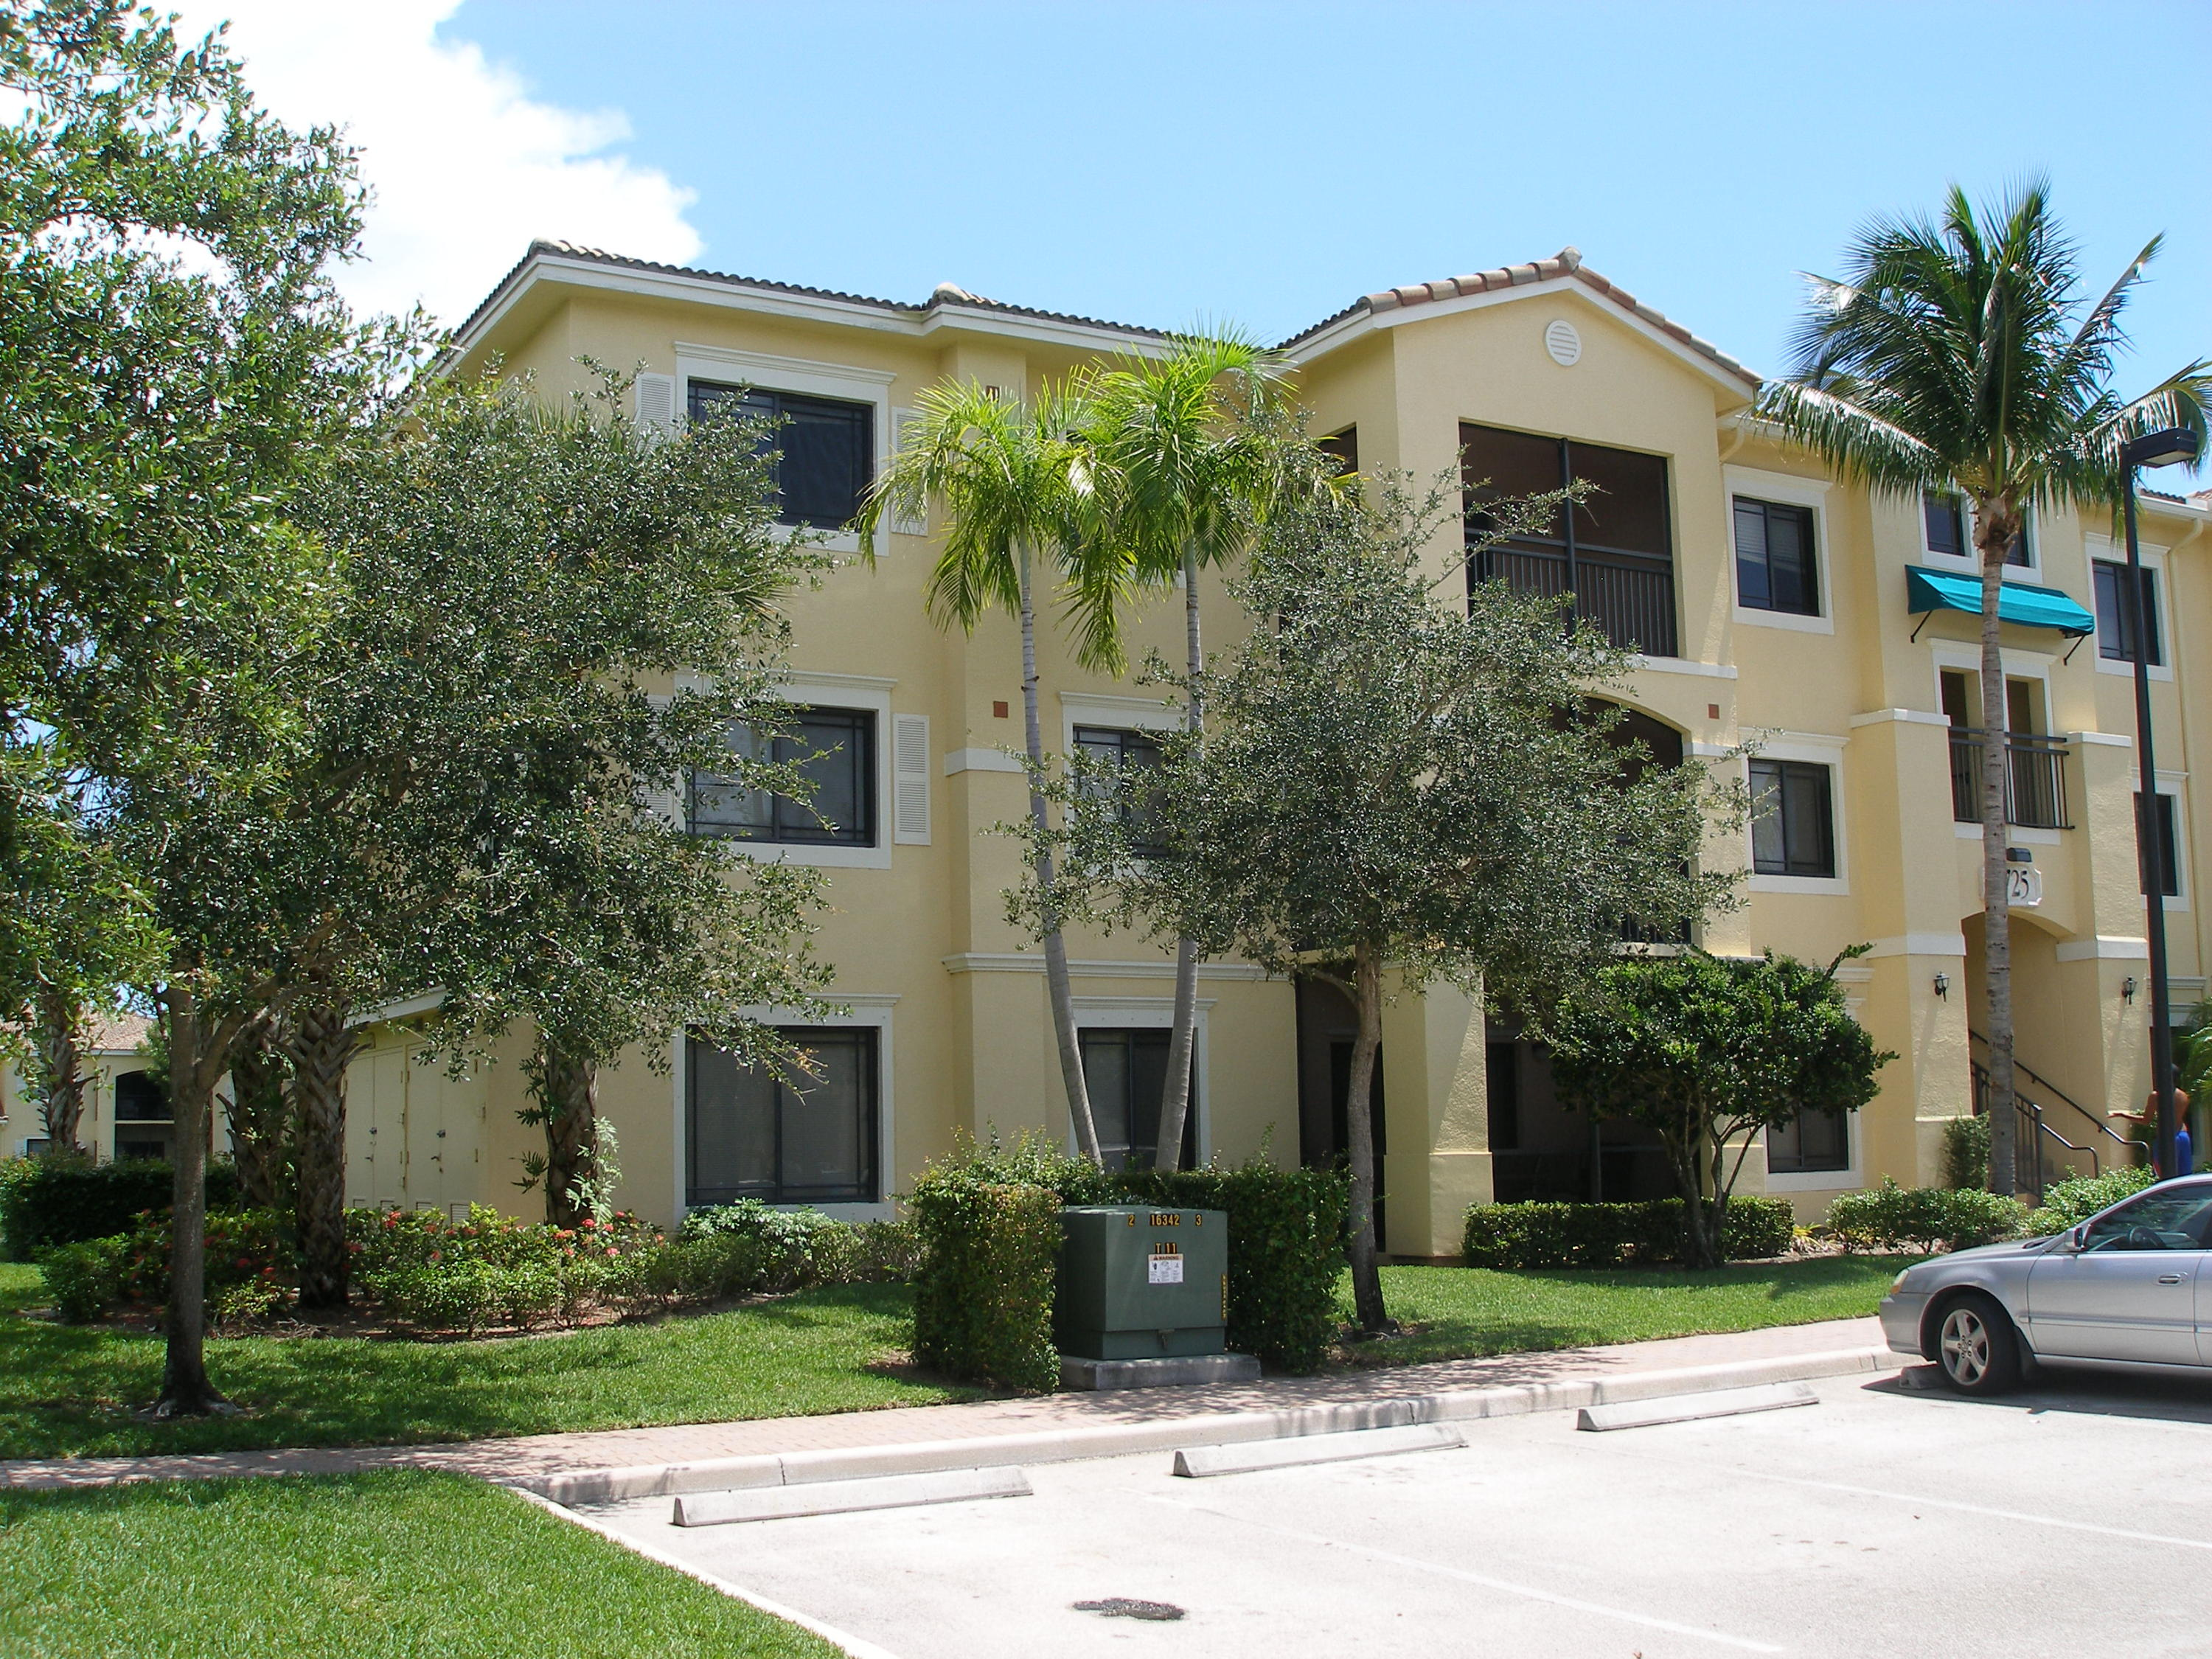 Fabulous 3rd floor condo with 3 bedrooms, 2 full baths in resort style San Matera, Sarento's neighborhood. Screened covered balcony off of the living room, some upgrades, full washer and dryer, carpeted, quite, clean and bright. NO cats. Community has plenty of amenities which are, resort pool, tennis, sauna, work out gym, business center, game room, kids play area. Close to all the shopping you can imagine with Gardens Mall, Downtown at the Gardens and Legacy Place also restaurants, banks, specialty shops, movie theater, whole foods grocery store and so much more. I-95 is just minutes away. Location, Location of this neighborhood are great. Tenant occupied till 6/15/2017. Small pet will be considered up to 40lbs with $500 non-refundable pet deposit. NO CATS